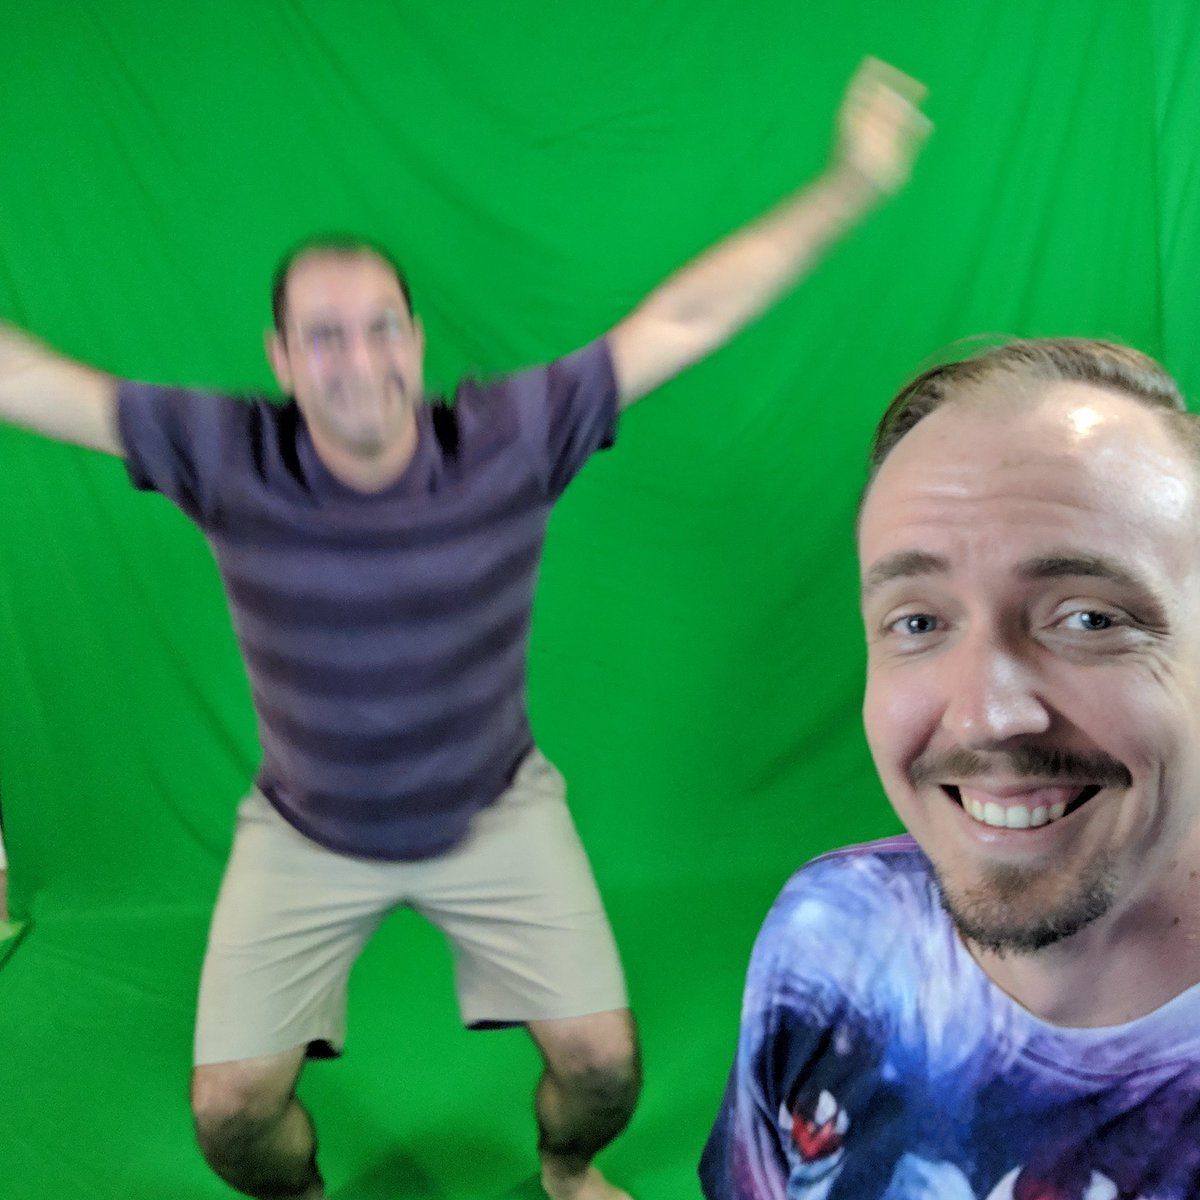 Partying with birdy boi @HeyFalcon_ tonight with some @BeatSaber in @LIV mixed reality. Live in 1 hour http://twitch.tv/TougeMonsterVR  #liv #BeatSaber #vr #virtualreality #htcvive